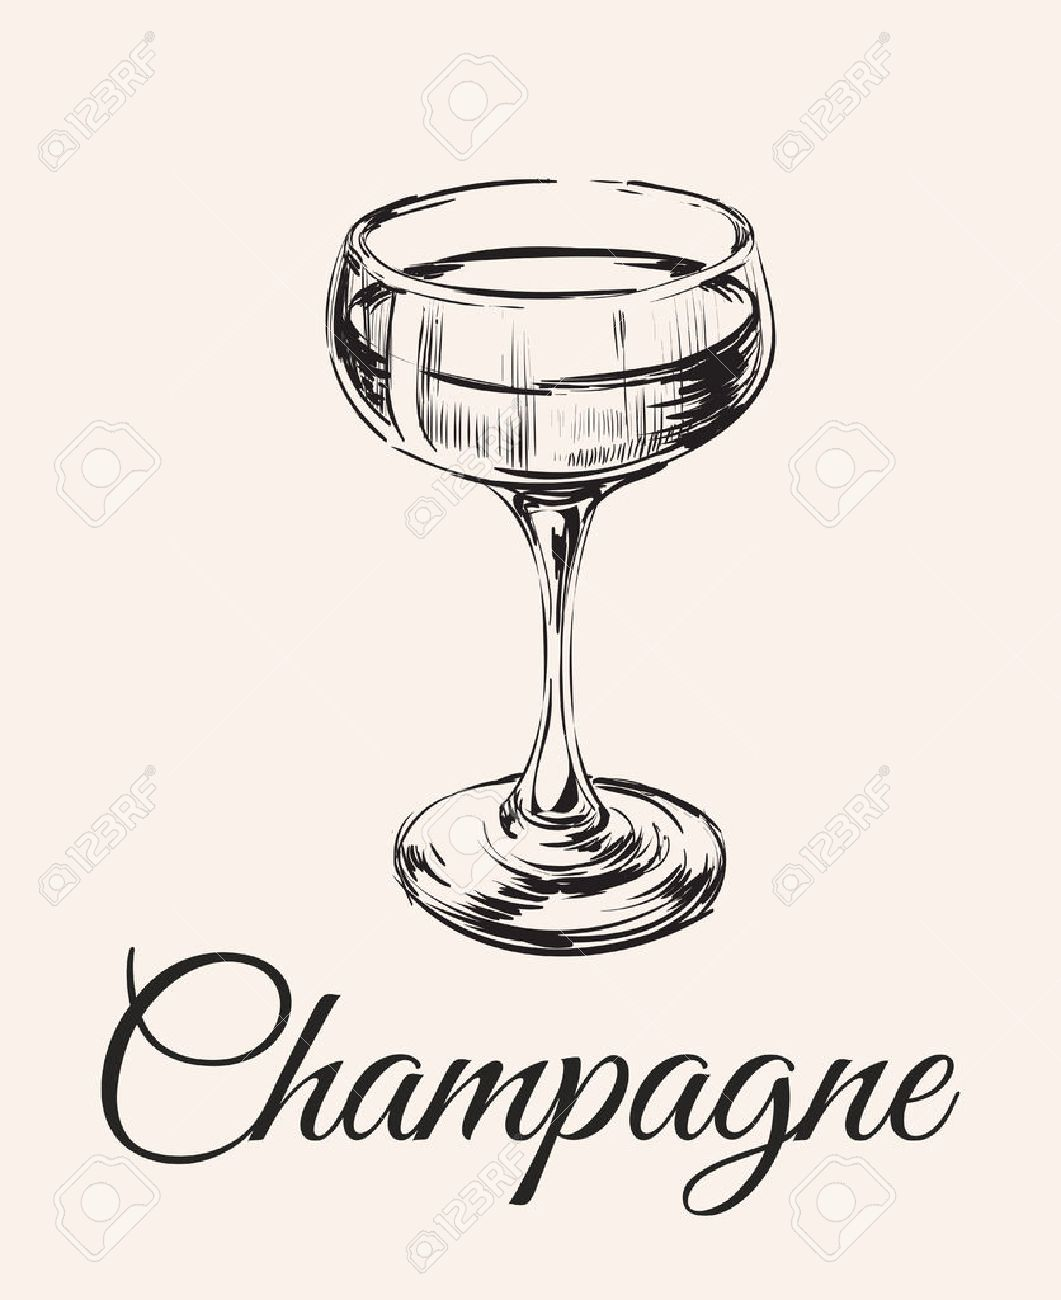 1061x1300 Champagne Glass Hand Drawing Vector Illustration Alcoholic